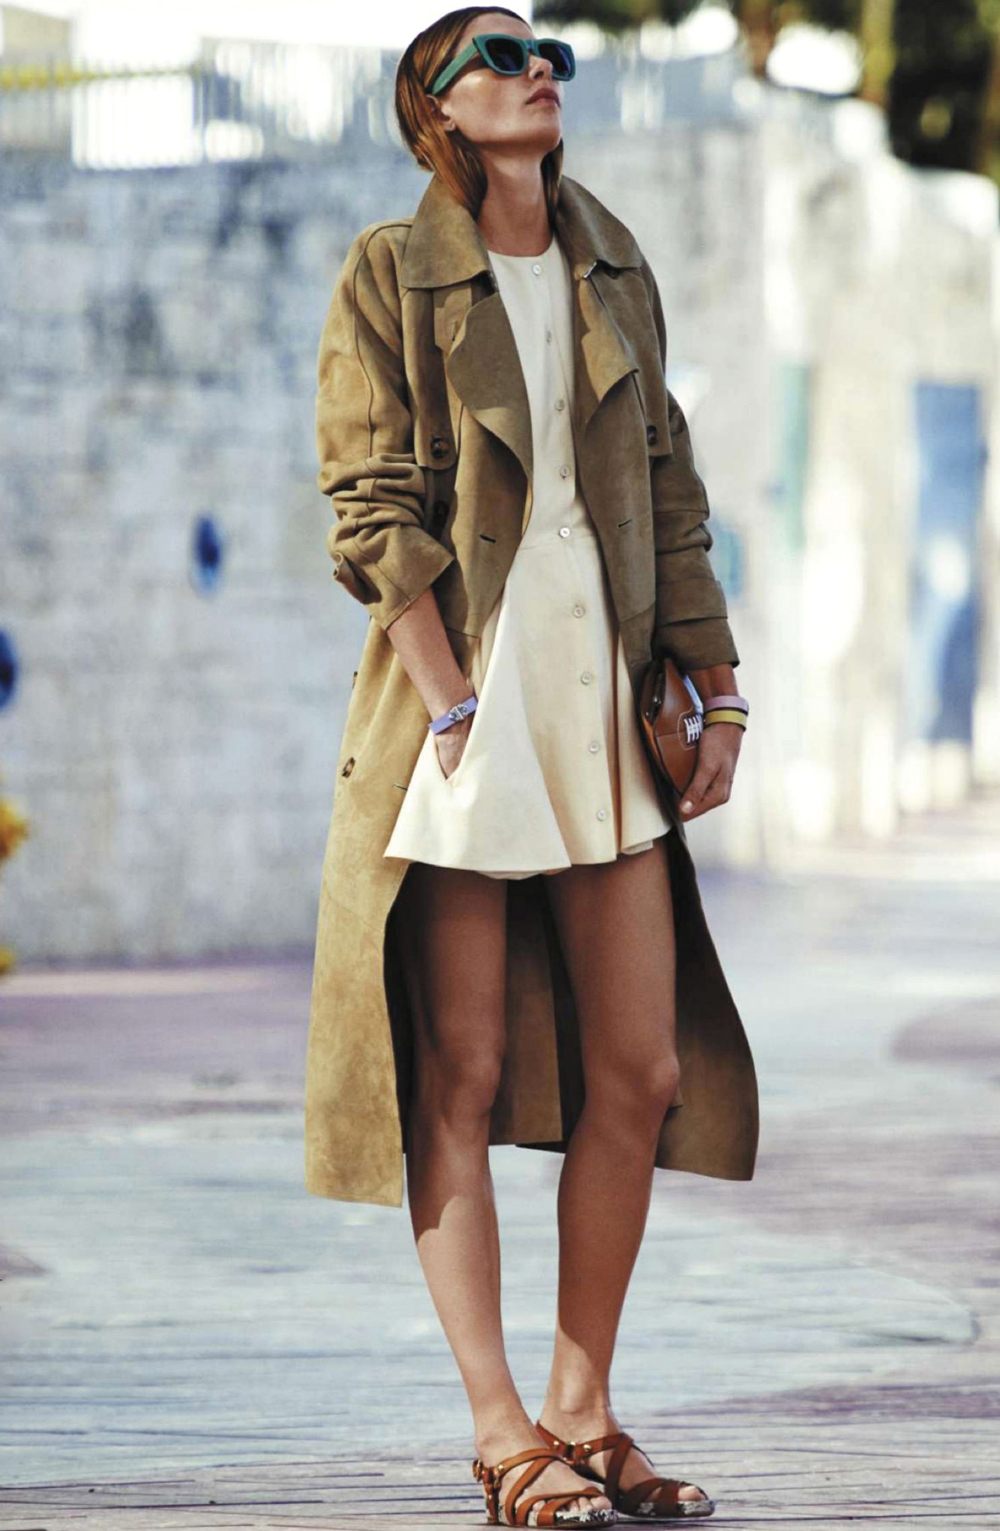 Outfit inspiration from L'Officiel Paris March 2014 - another stylish way to wear trench